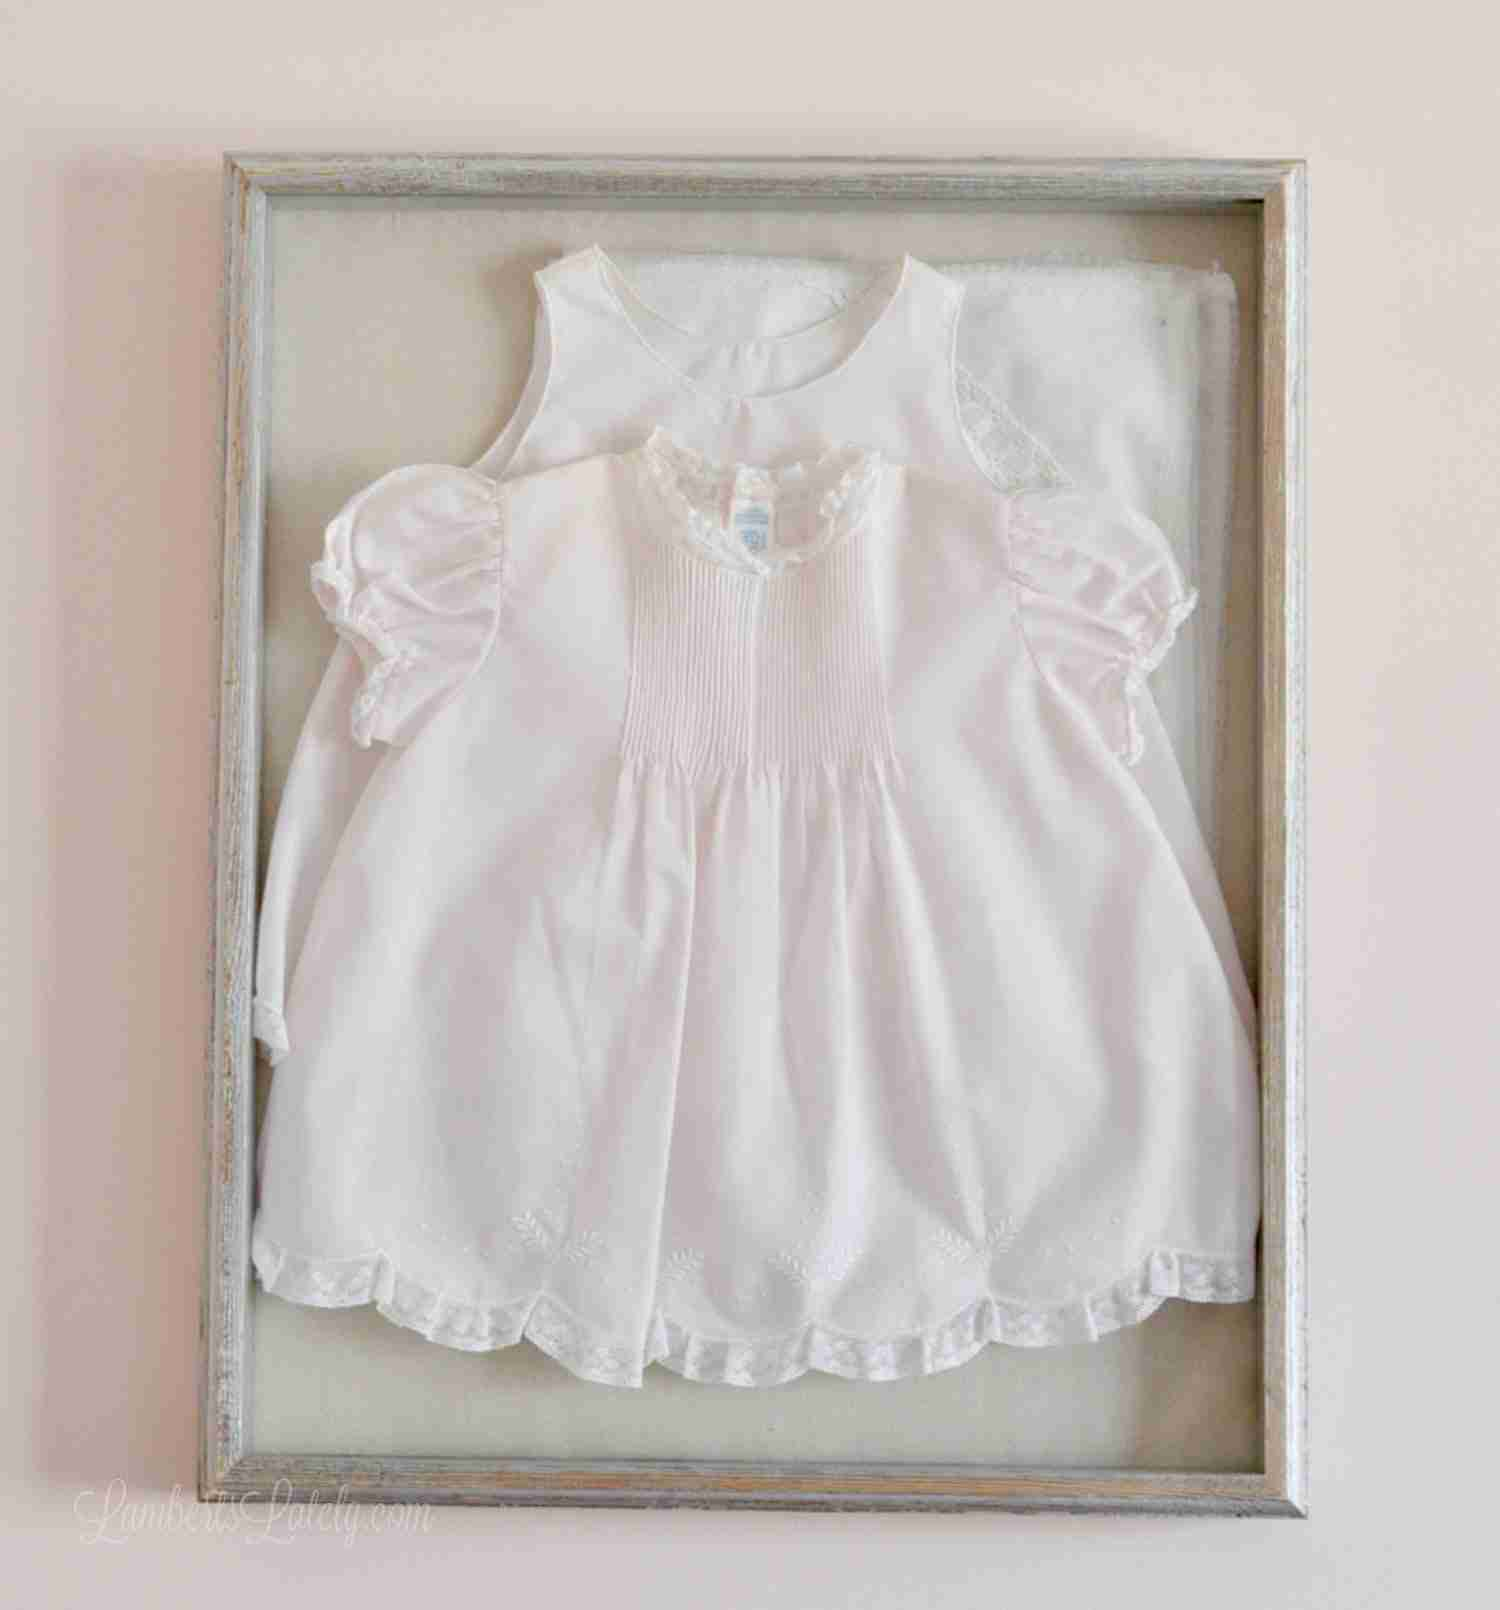 Display that special baby outfit in a shadow box! This is a cute idea for a child's room or a nursery.  You could use this idea for any newborn clothes - includes step-by-step instructions for doing the cheap DIY.